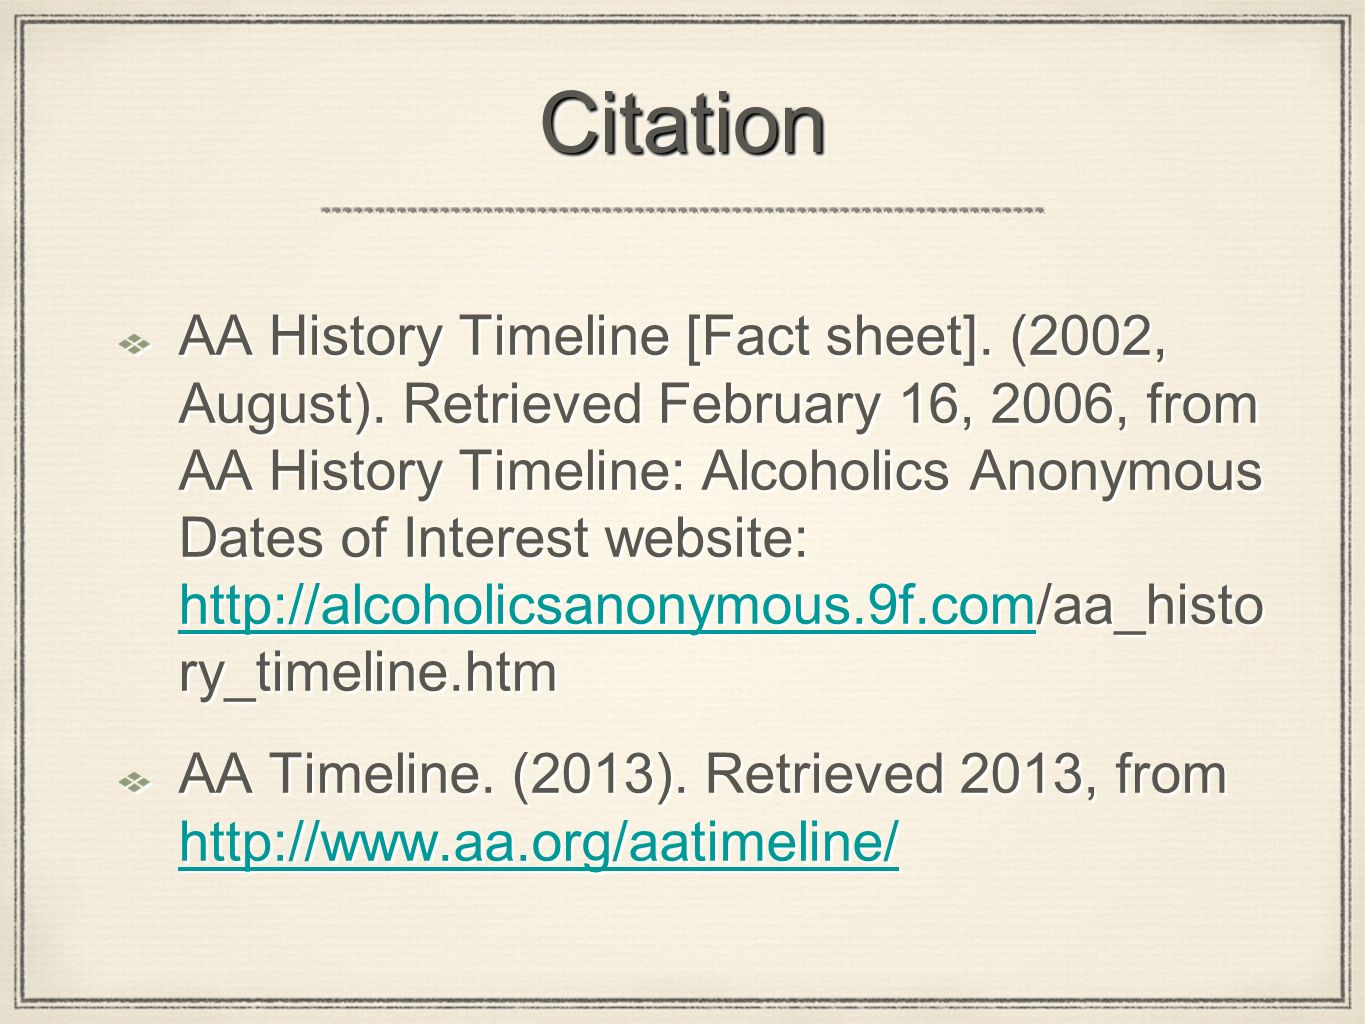 CitationCitation AA History Timeline [Fact sheet]. (2002, August). Retrieved February 16, 2006, from AA History Timeline: Alcoholics Anonymous Dates o